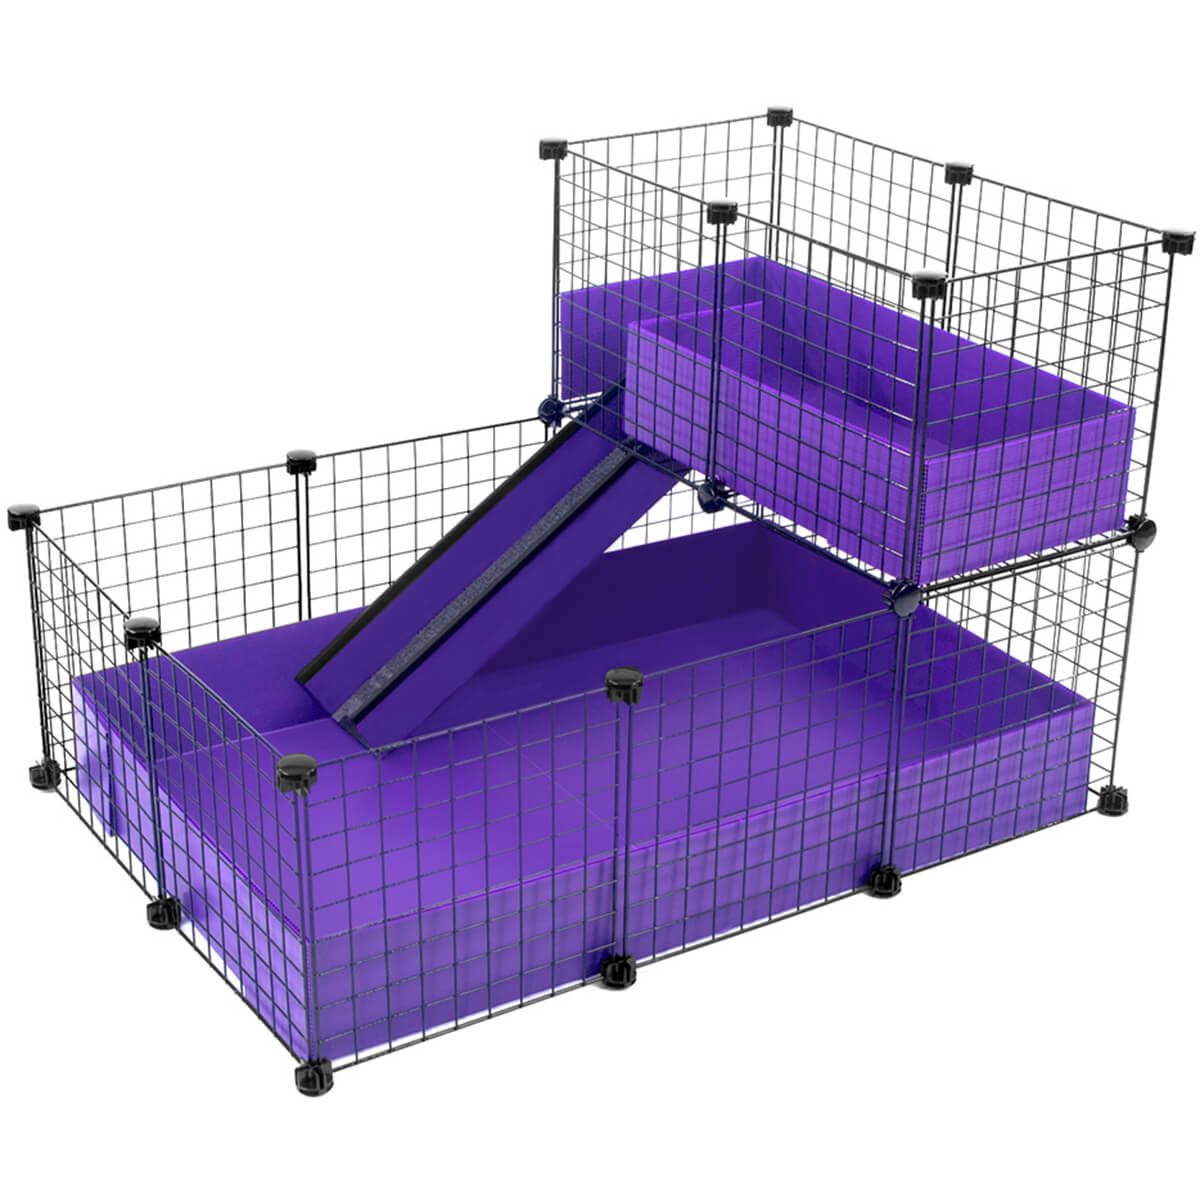 Small 2x3 grids loft deluxe cages cagetopia for Small guinea pig cages for sale